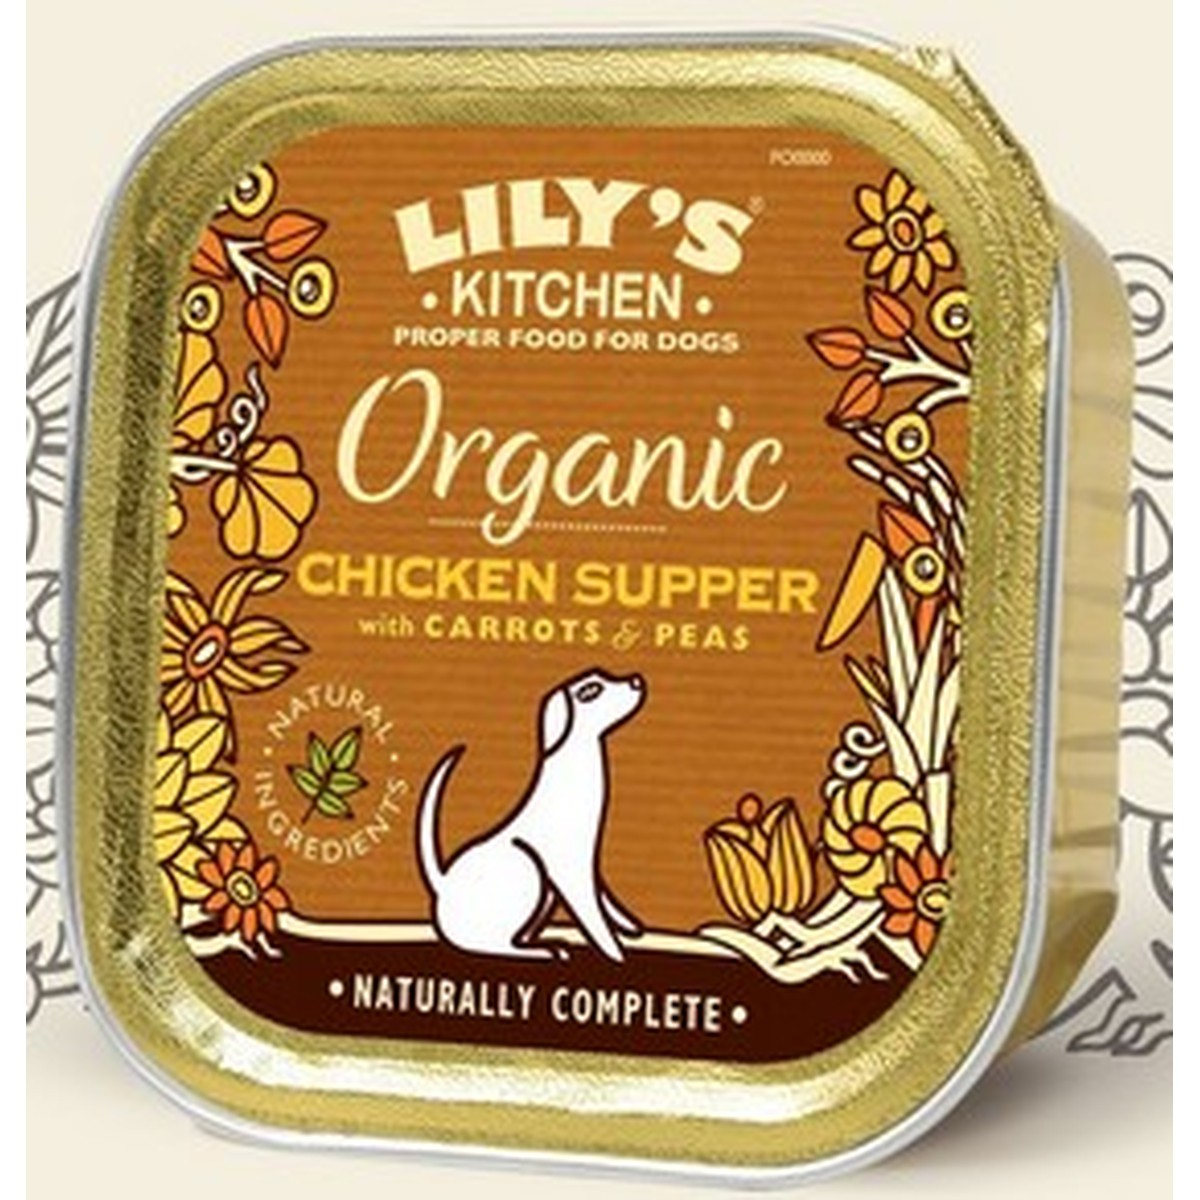 Lily's  Lily's dog Adult Organic Chicken 150g  150g